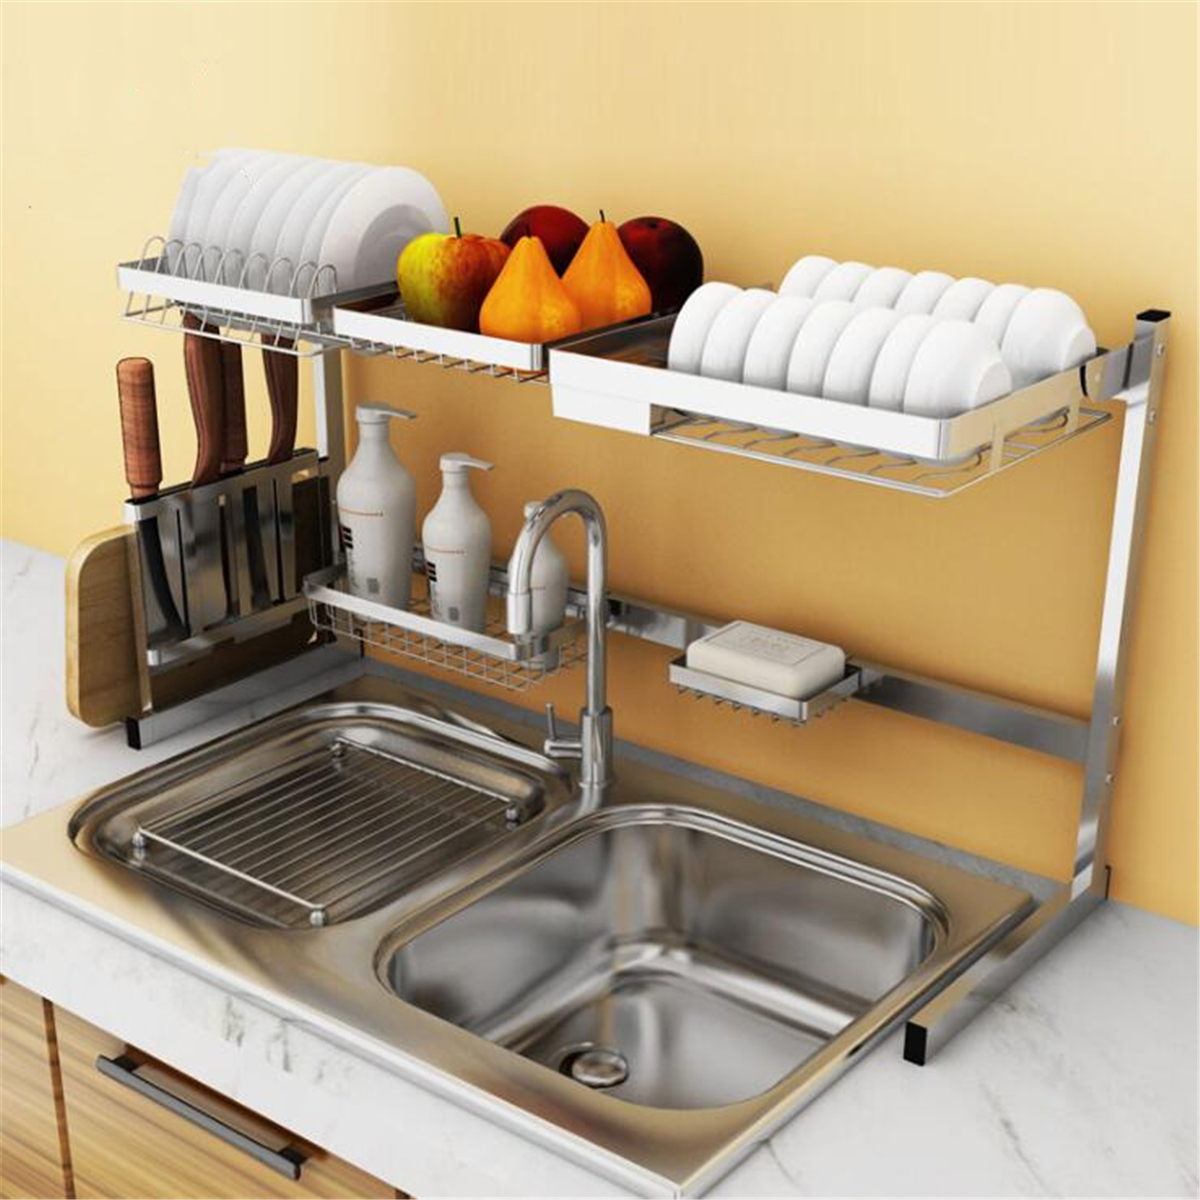 Details about Stainless Steel Kitchen Shelf Rack Plate Dish Rack Drying  Drain Storage Holders